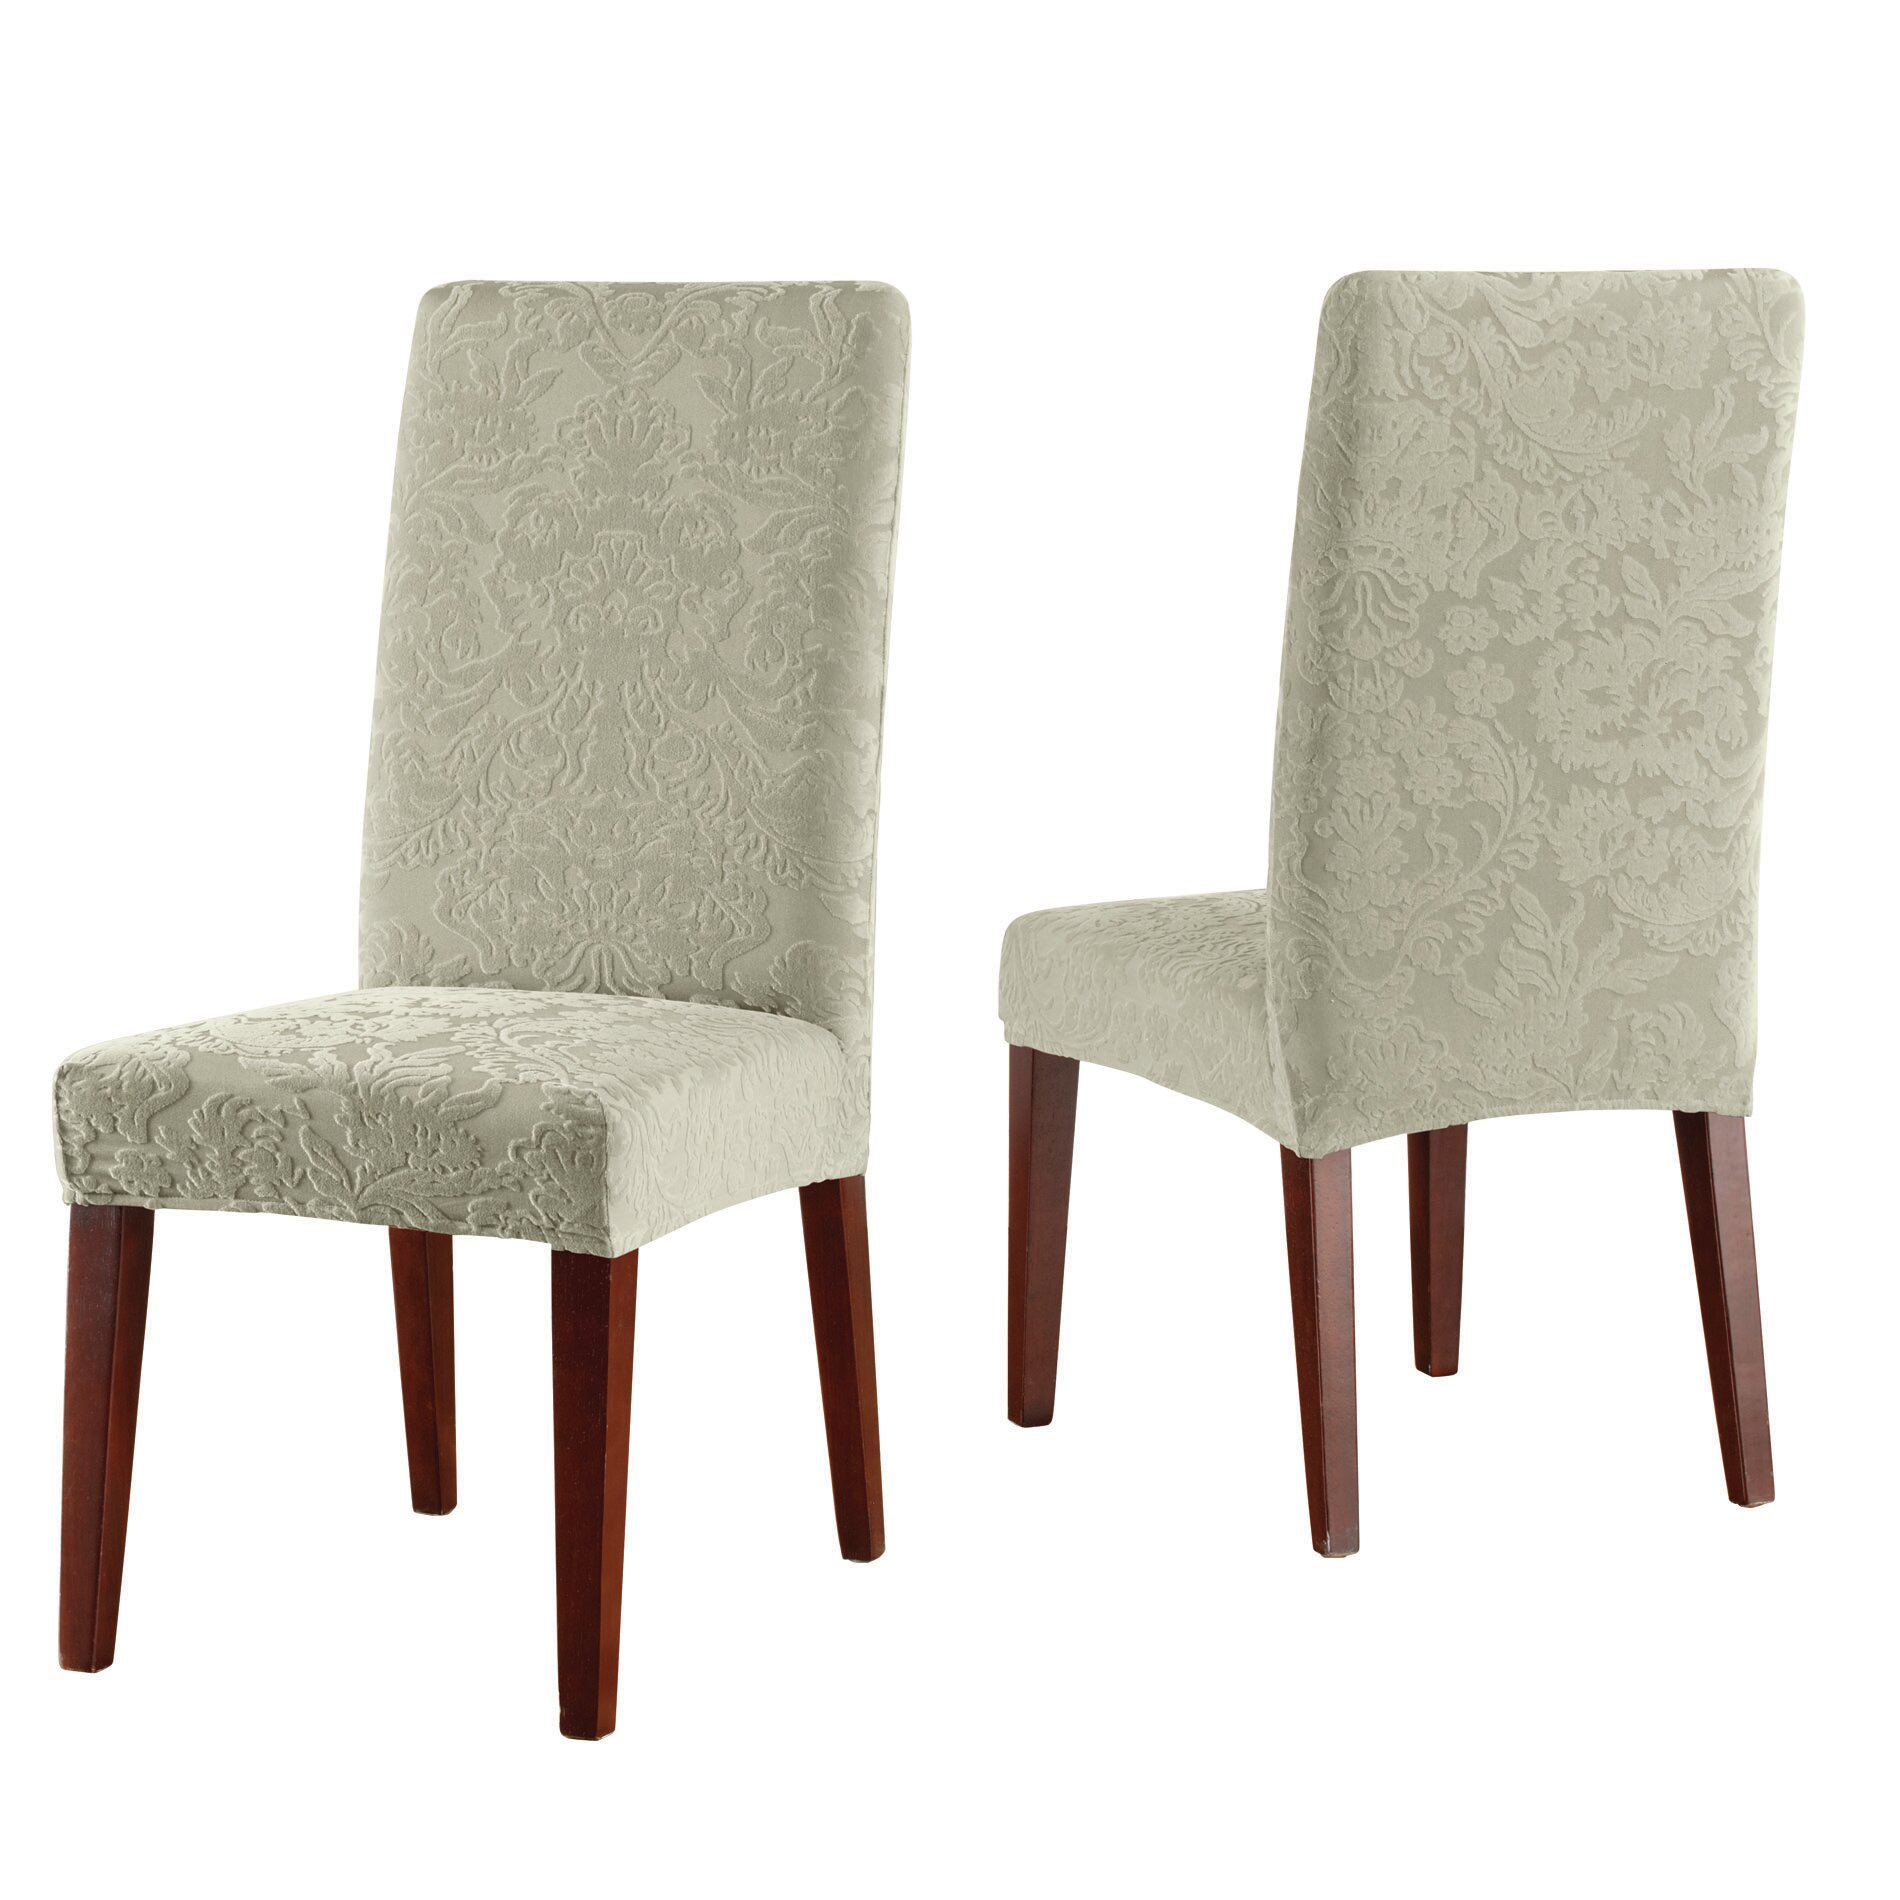 Sure Fit Stretch Jacquard Damask Dining Chair Slipcover  : StretchJacquardDamaskDiningChairSlipcover from www.wayfair.com size 1900 x 1900 jpeg 256kB